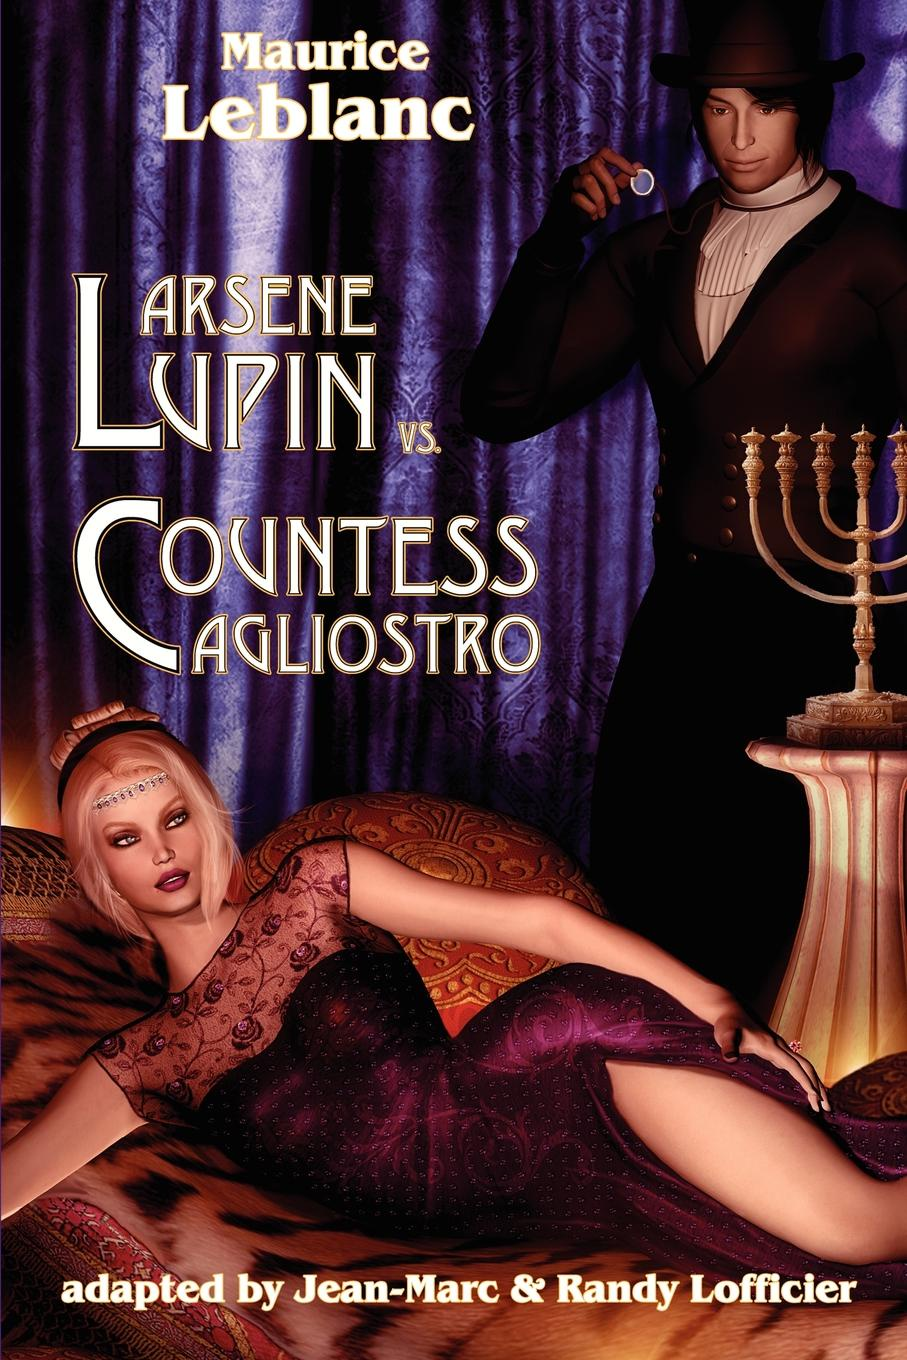 Maurice Leblanc Arsene Lupin Vs Countess Cagliostro александр дюма the countess of saint geran